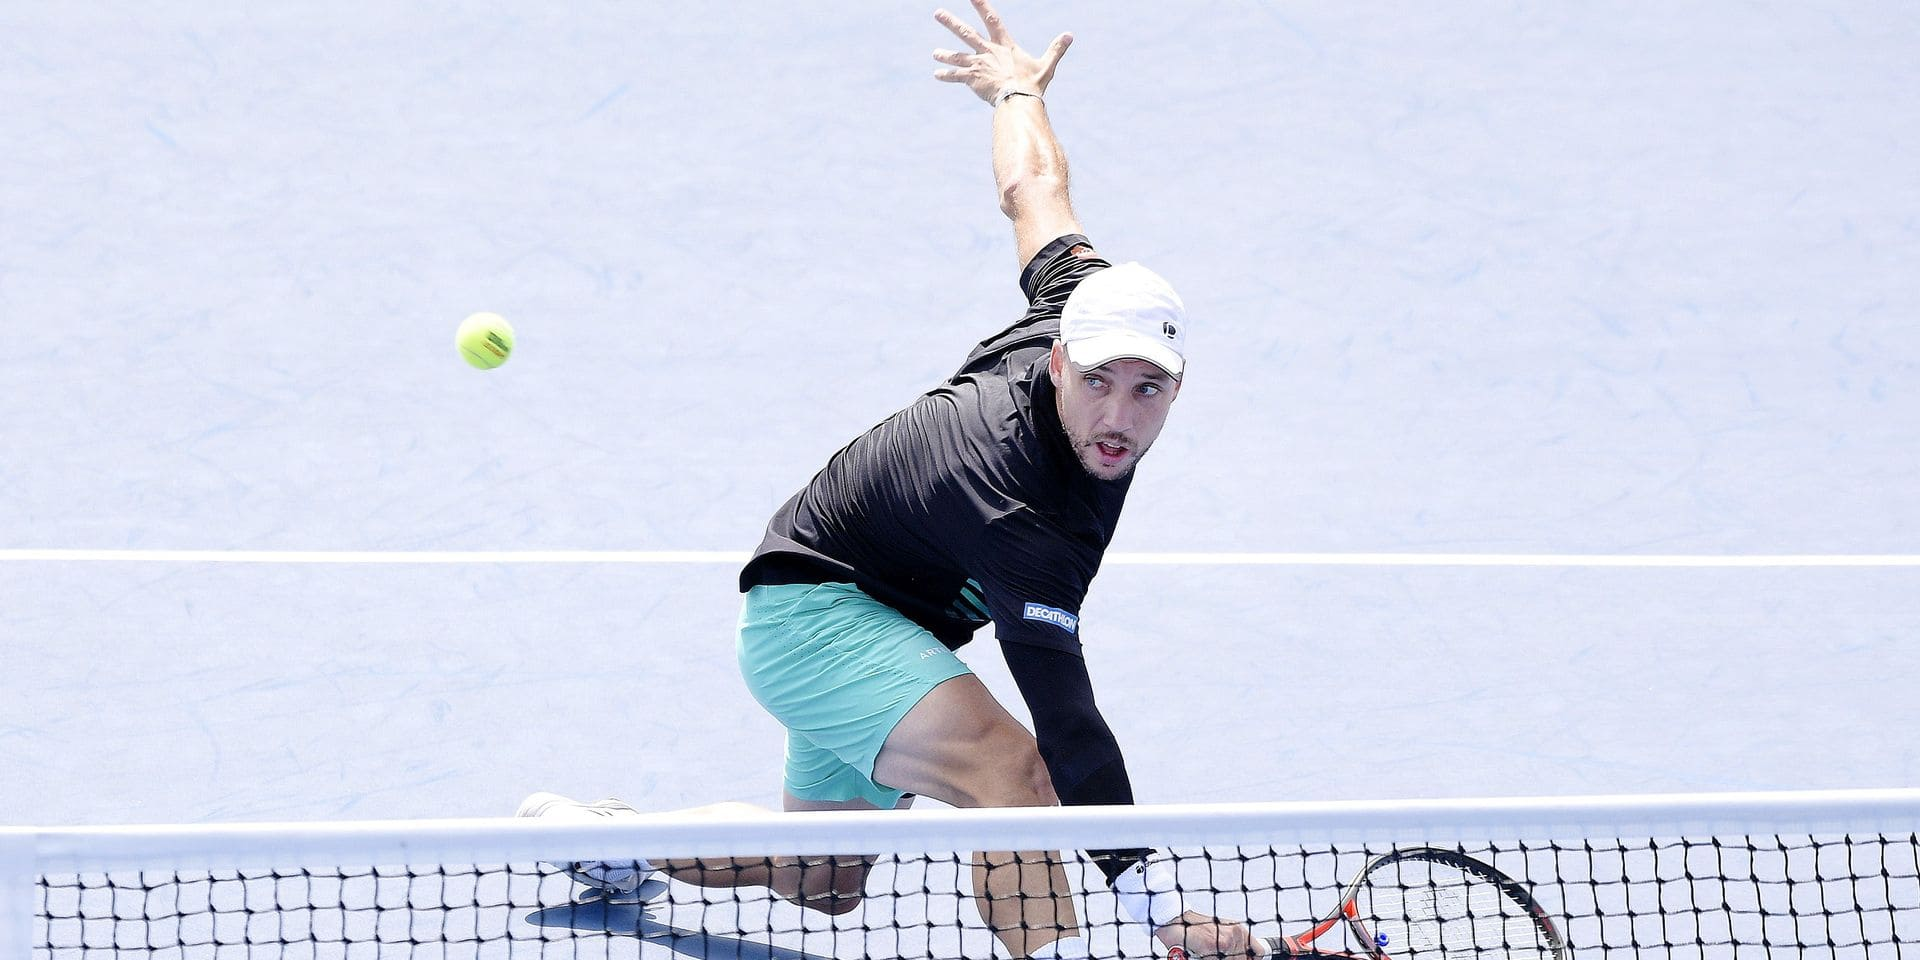 Belgian Steve Darcis pictured in action during a first round game between Belgian Steve Darcis (ATP 186) and Serbian Dusan Lajovic (ATP 29) at the Men's Singles of the US Open Grand Slam tennis tournament, at Flushing Meadow, in New York City, USA, Monday 26 August 2019. BELGA PHOTO YORICK JANSENS